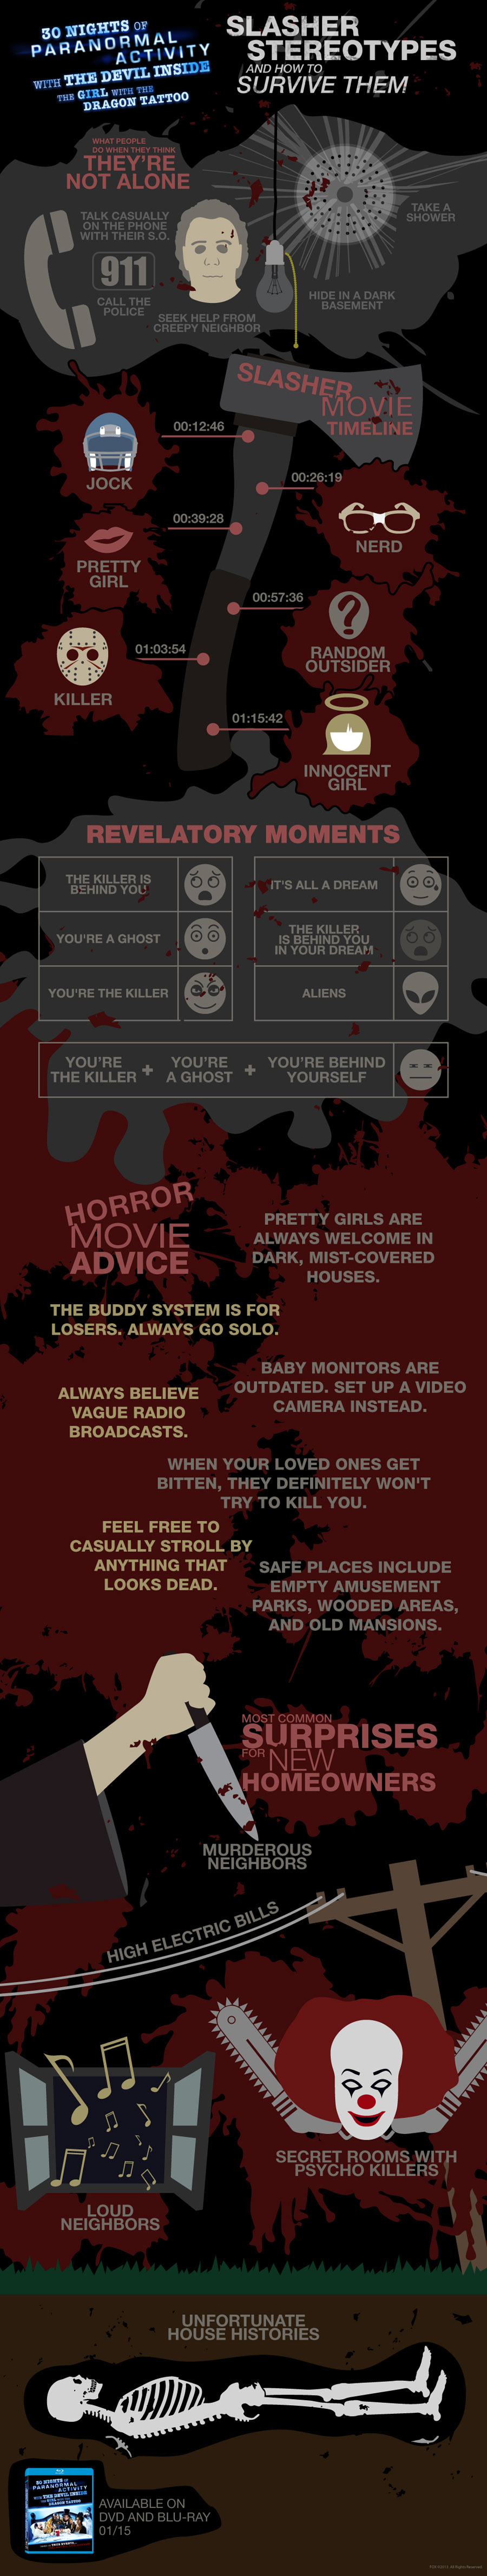 30-nights-infographic-comedy-images